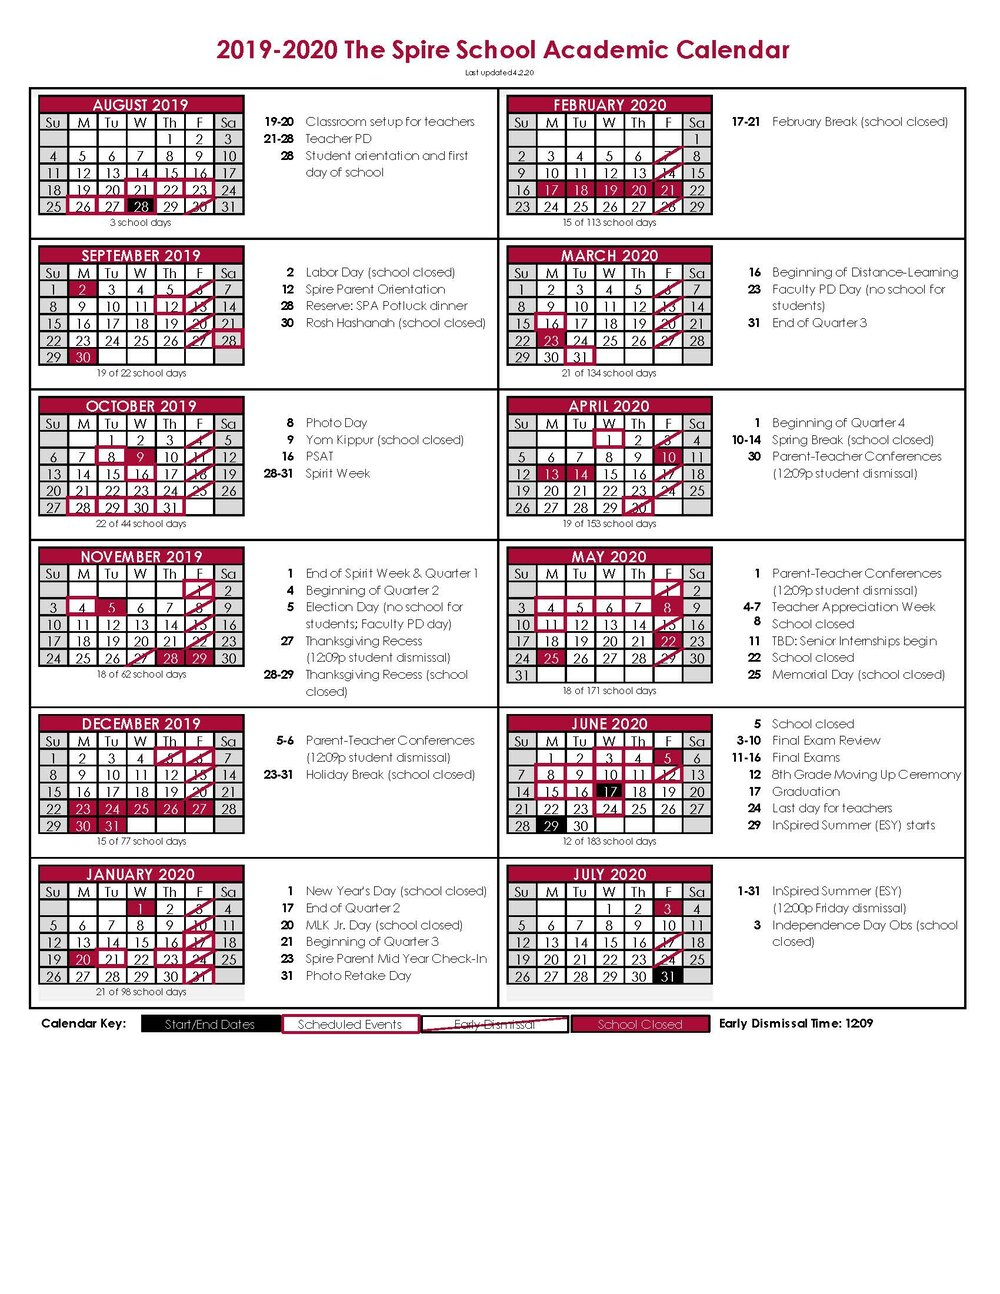 Academic Calendar — The Spire School For Academic Calender For Middlesex County College For 2021